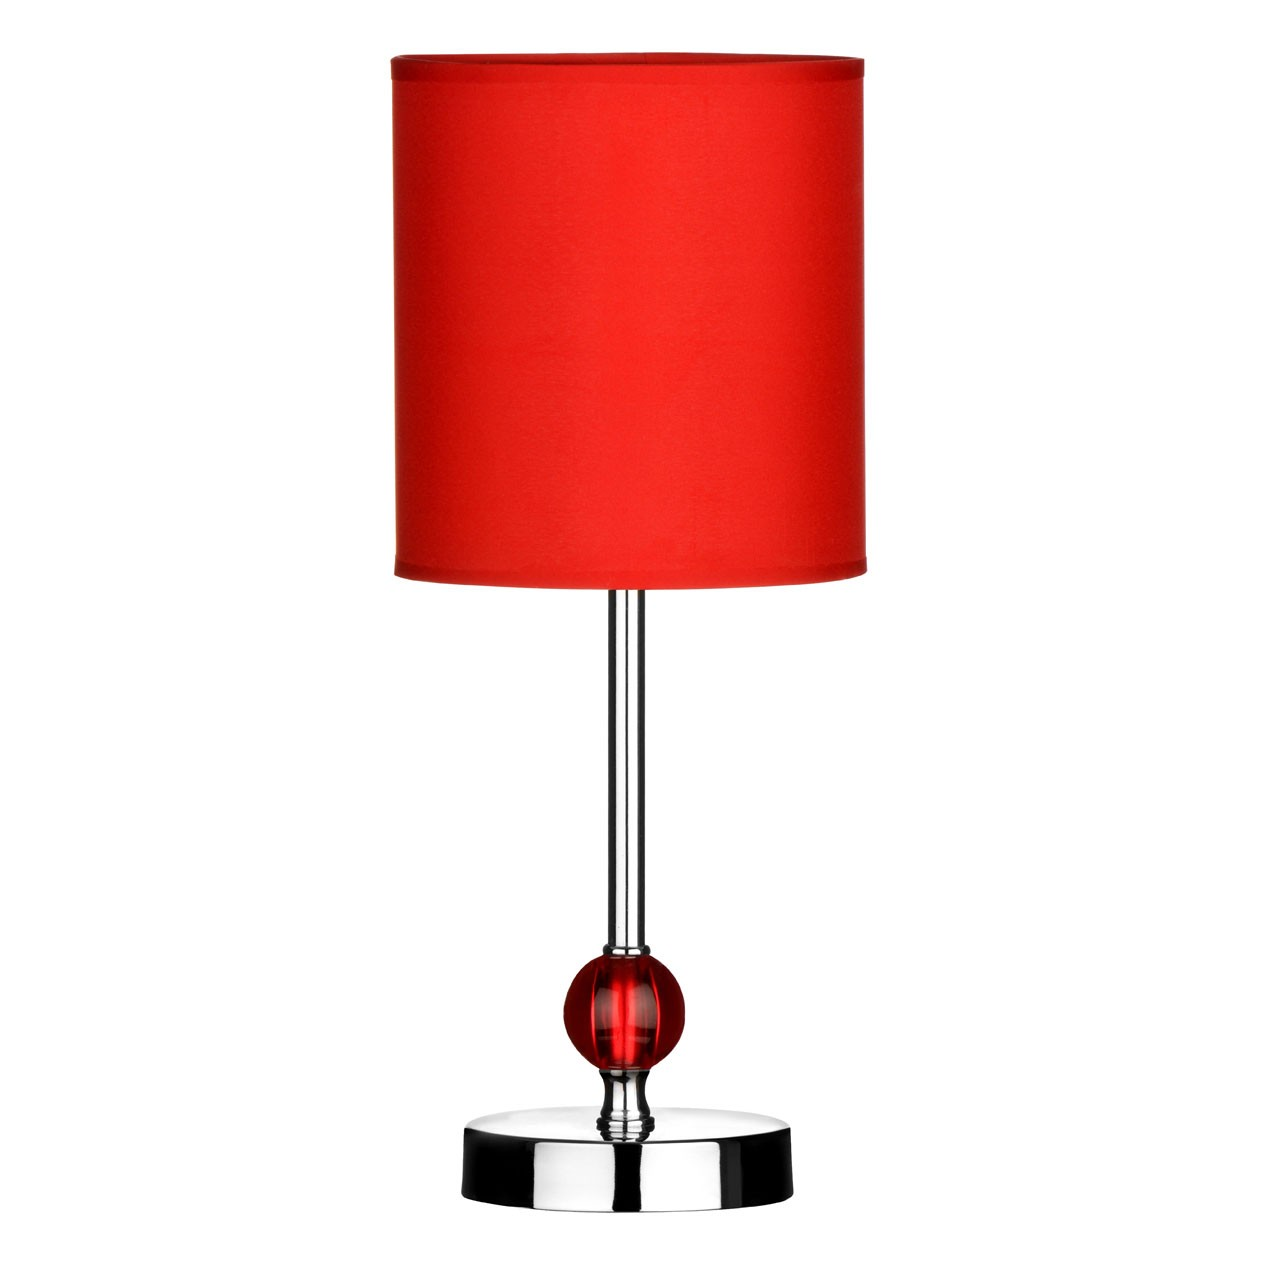 Chrome Stem Table Lamp with Acrylic Ball and Fabric Shade - Red